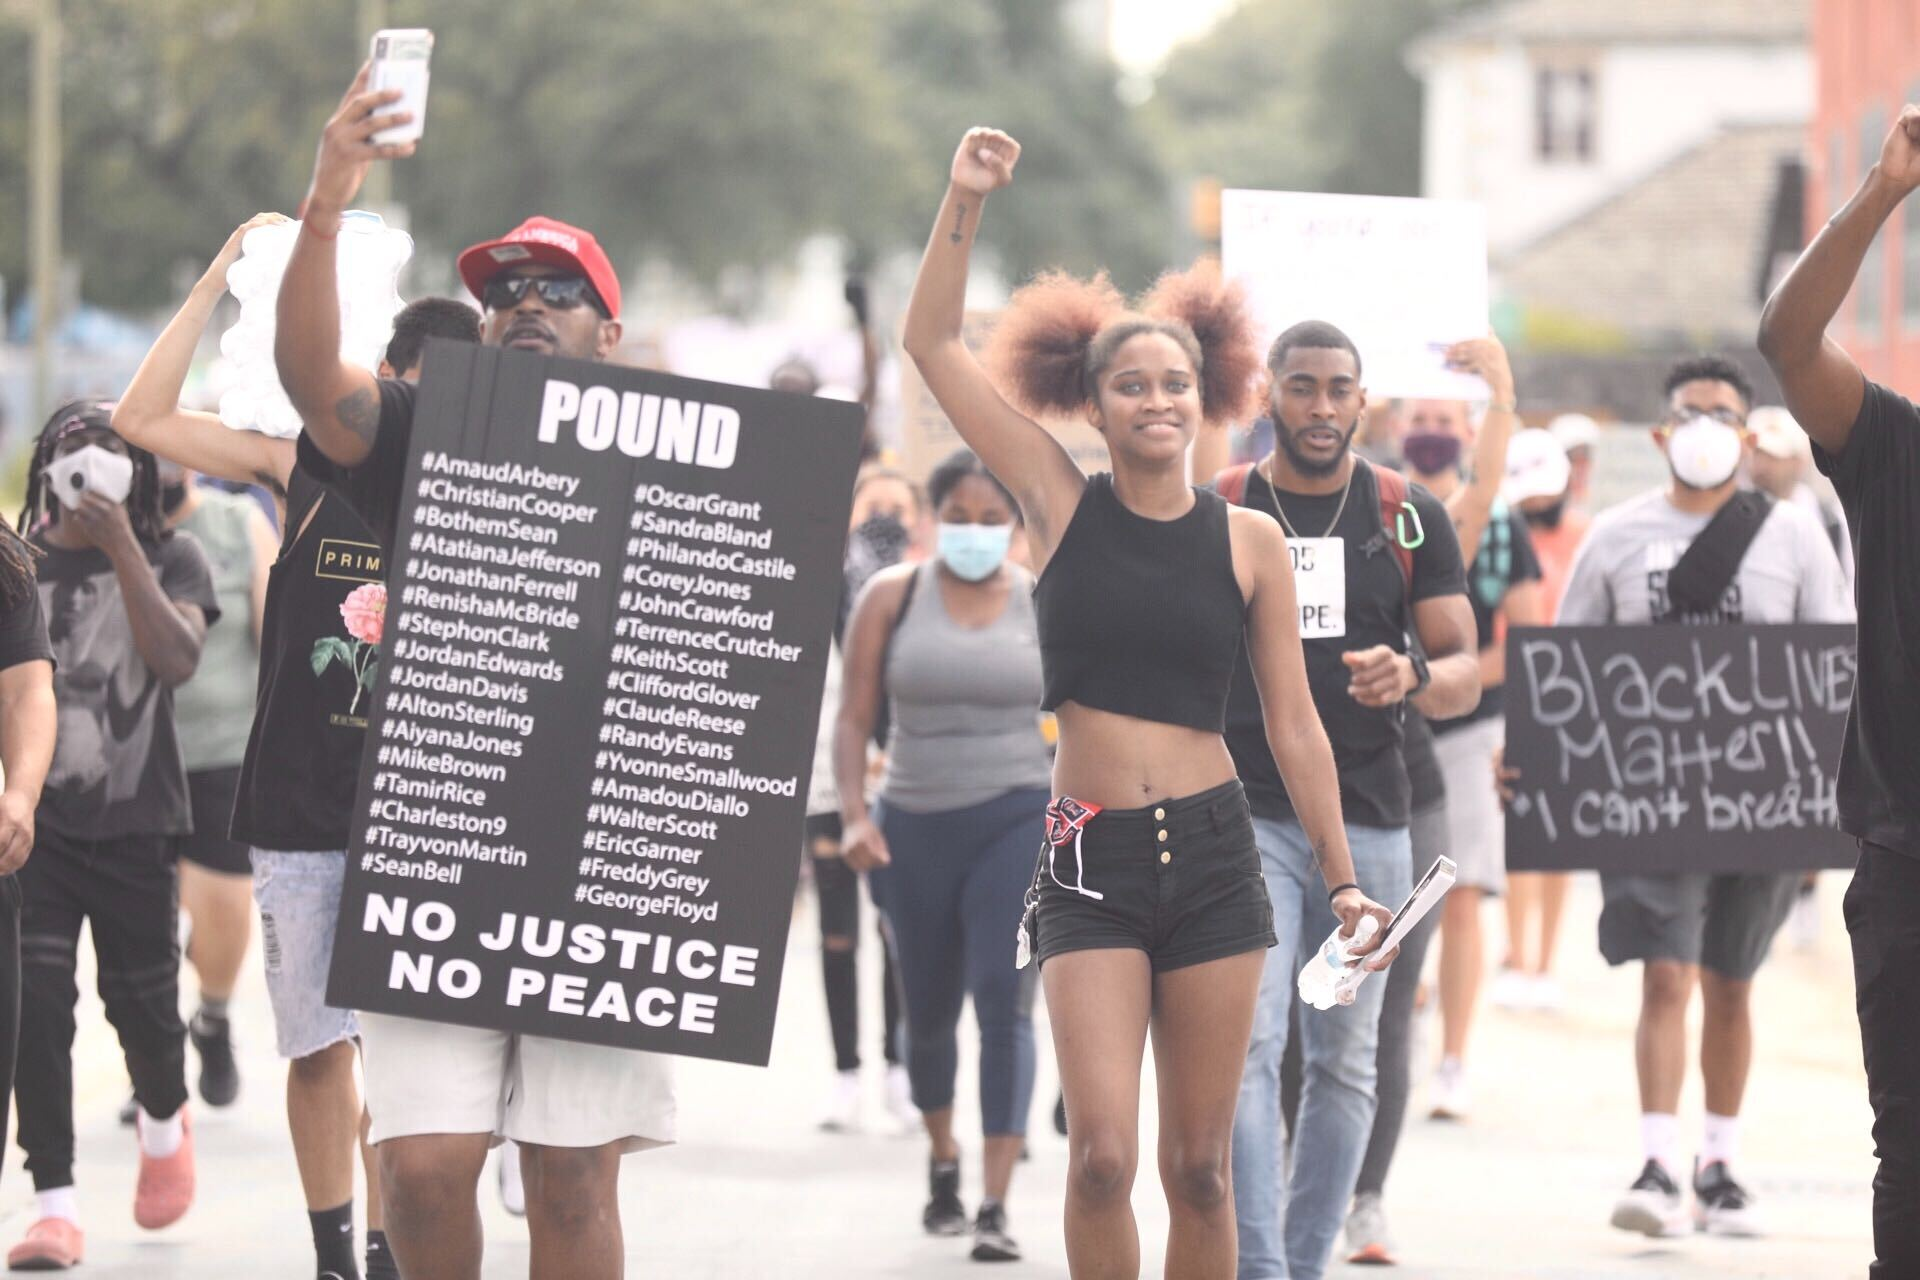 Protesters march during an afternoon demonstration against police brutality in Downtown San Antonio.